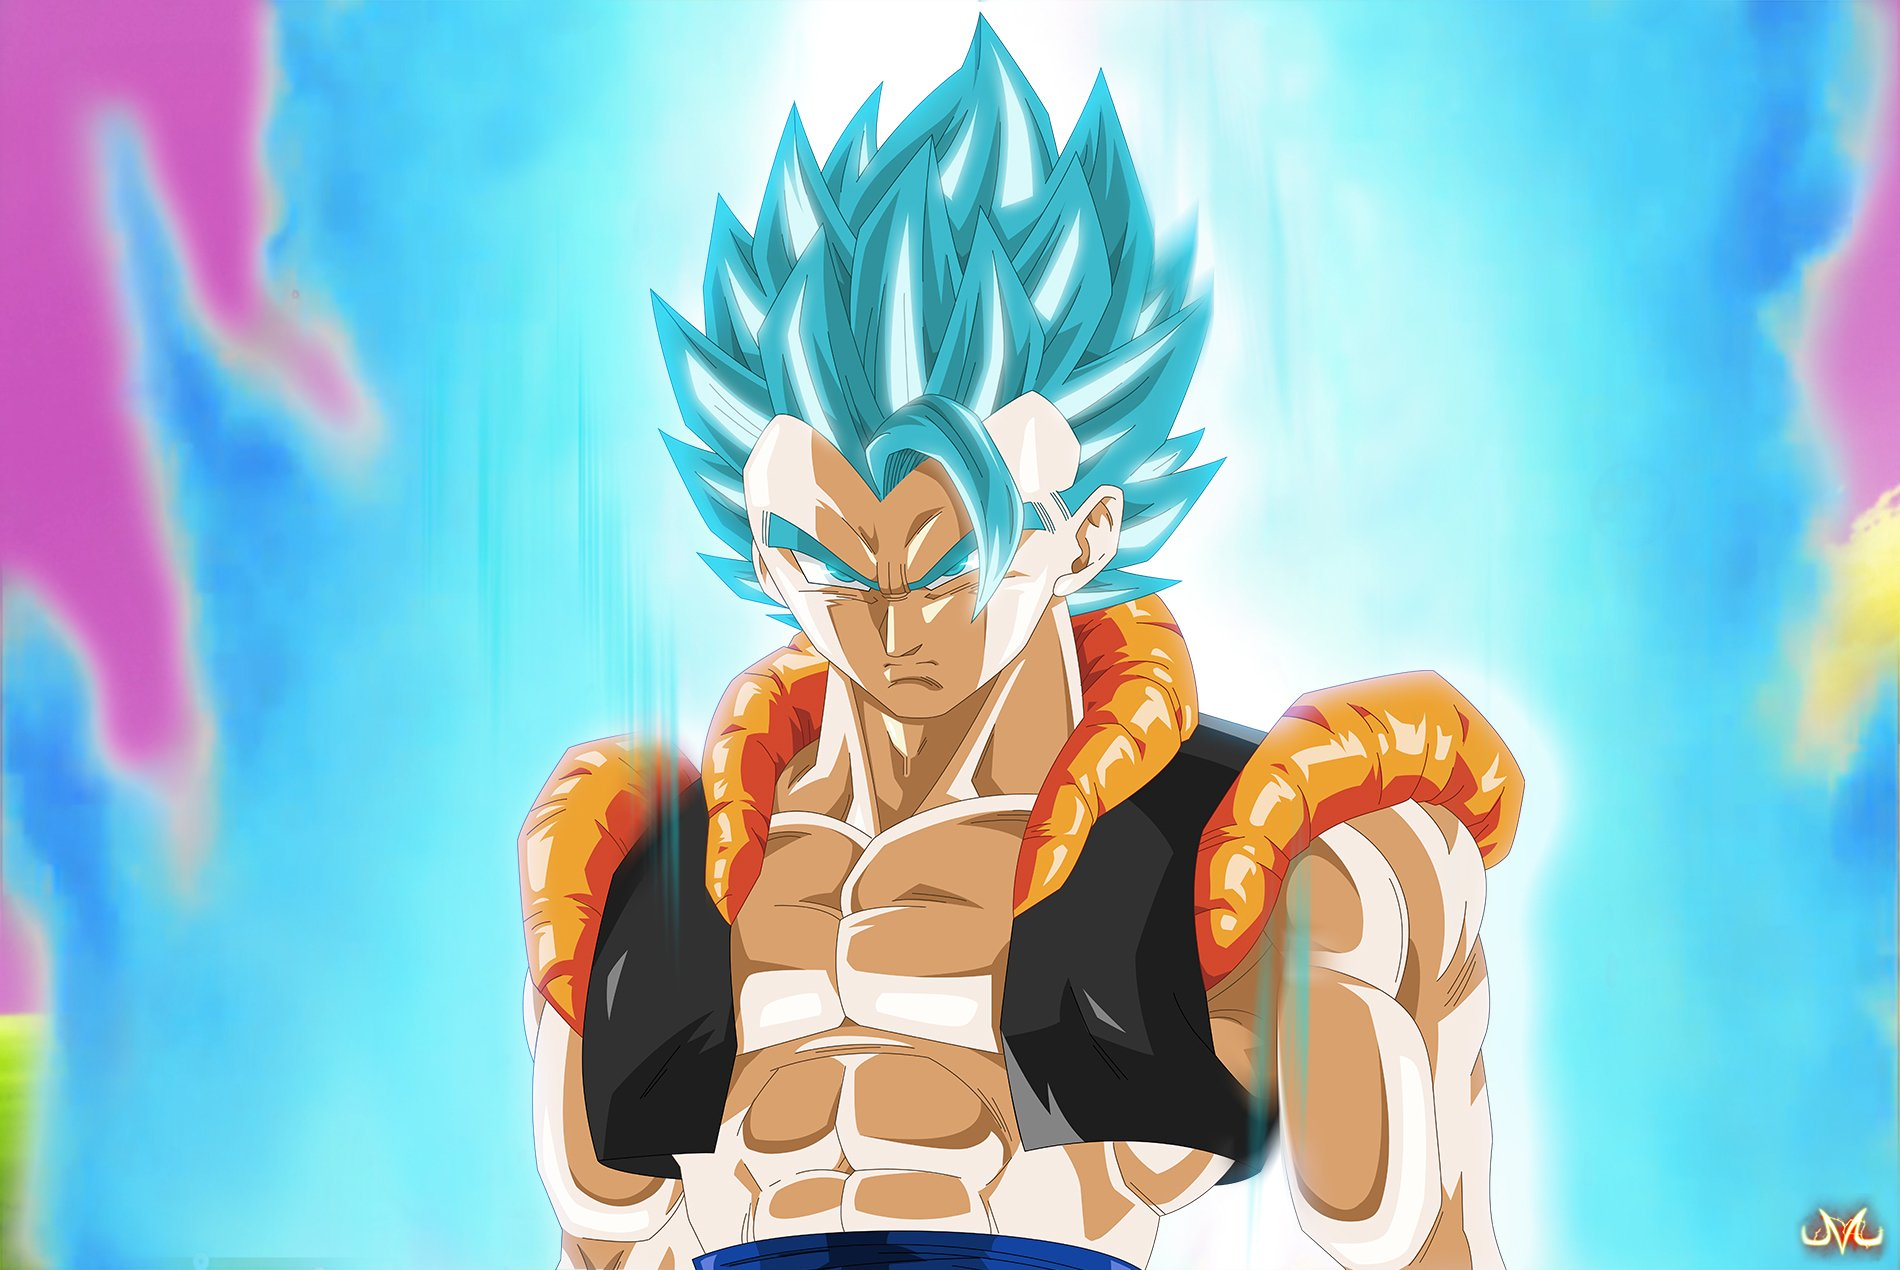 Anime Dragon Ball Super Goku Saiyan Super Saiyan God · HD Wallpaper | Background Image ID:678318